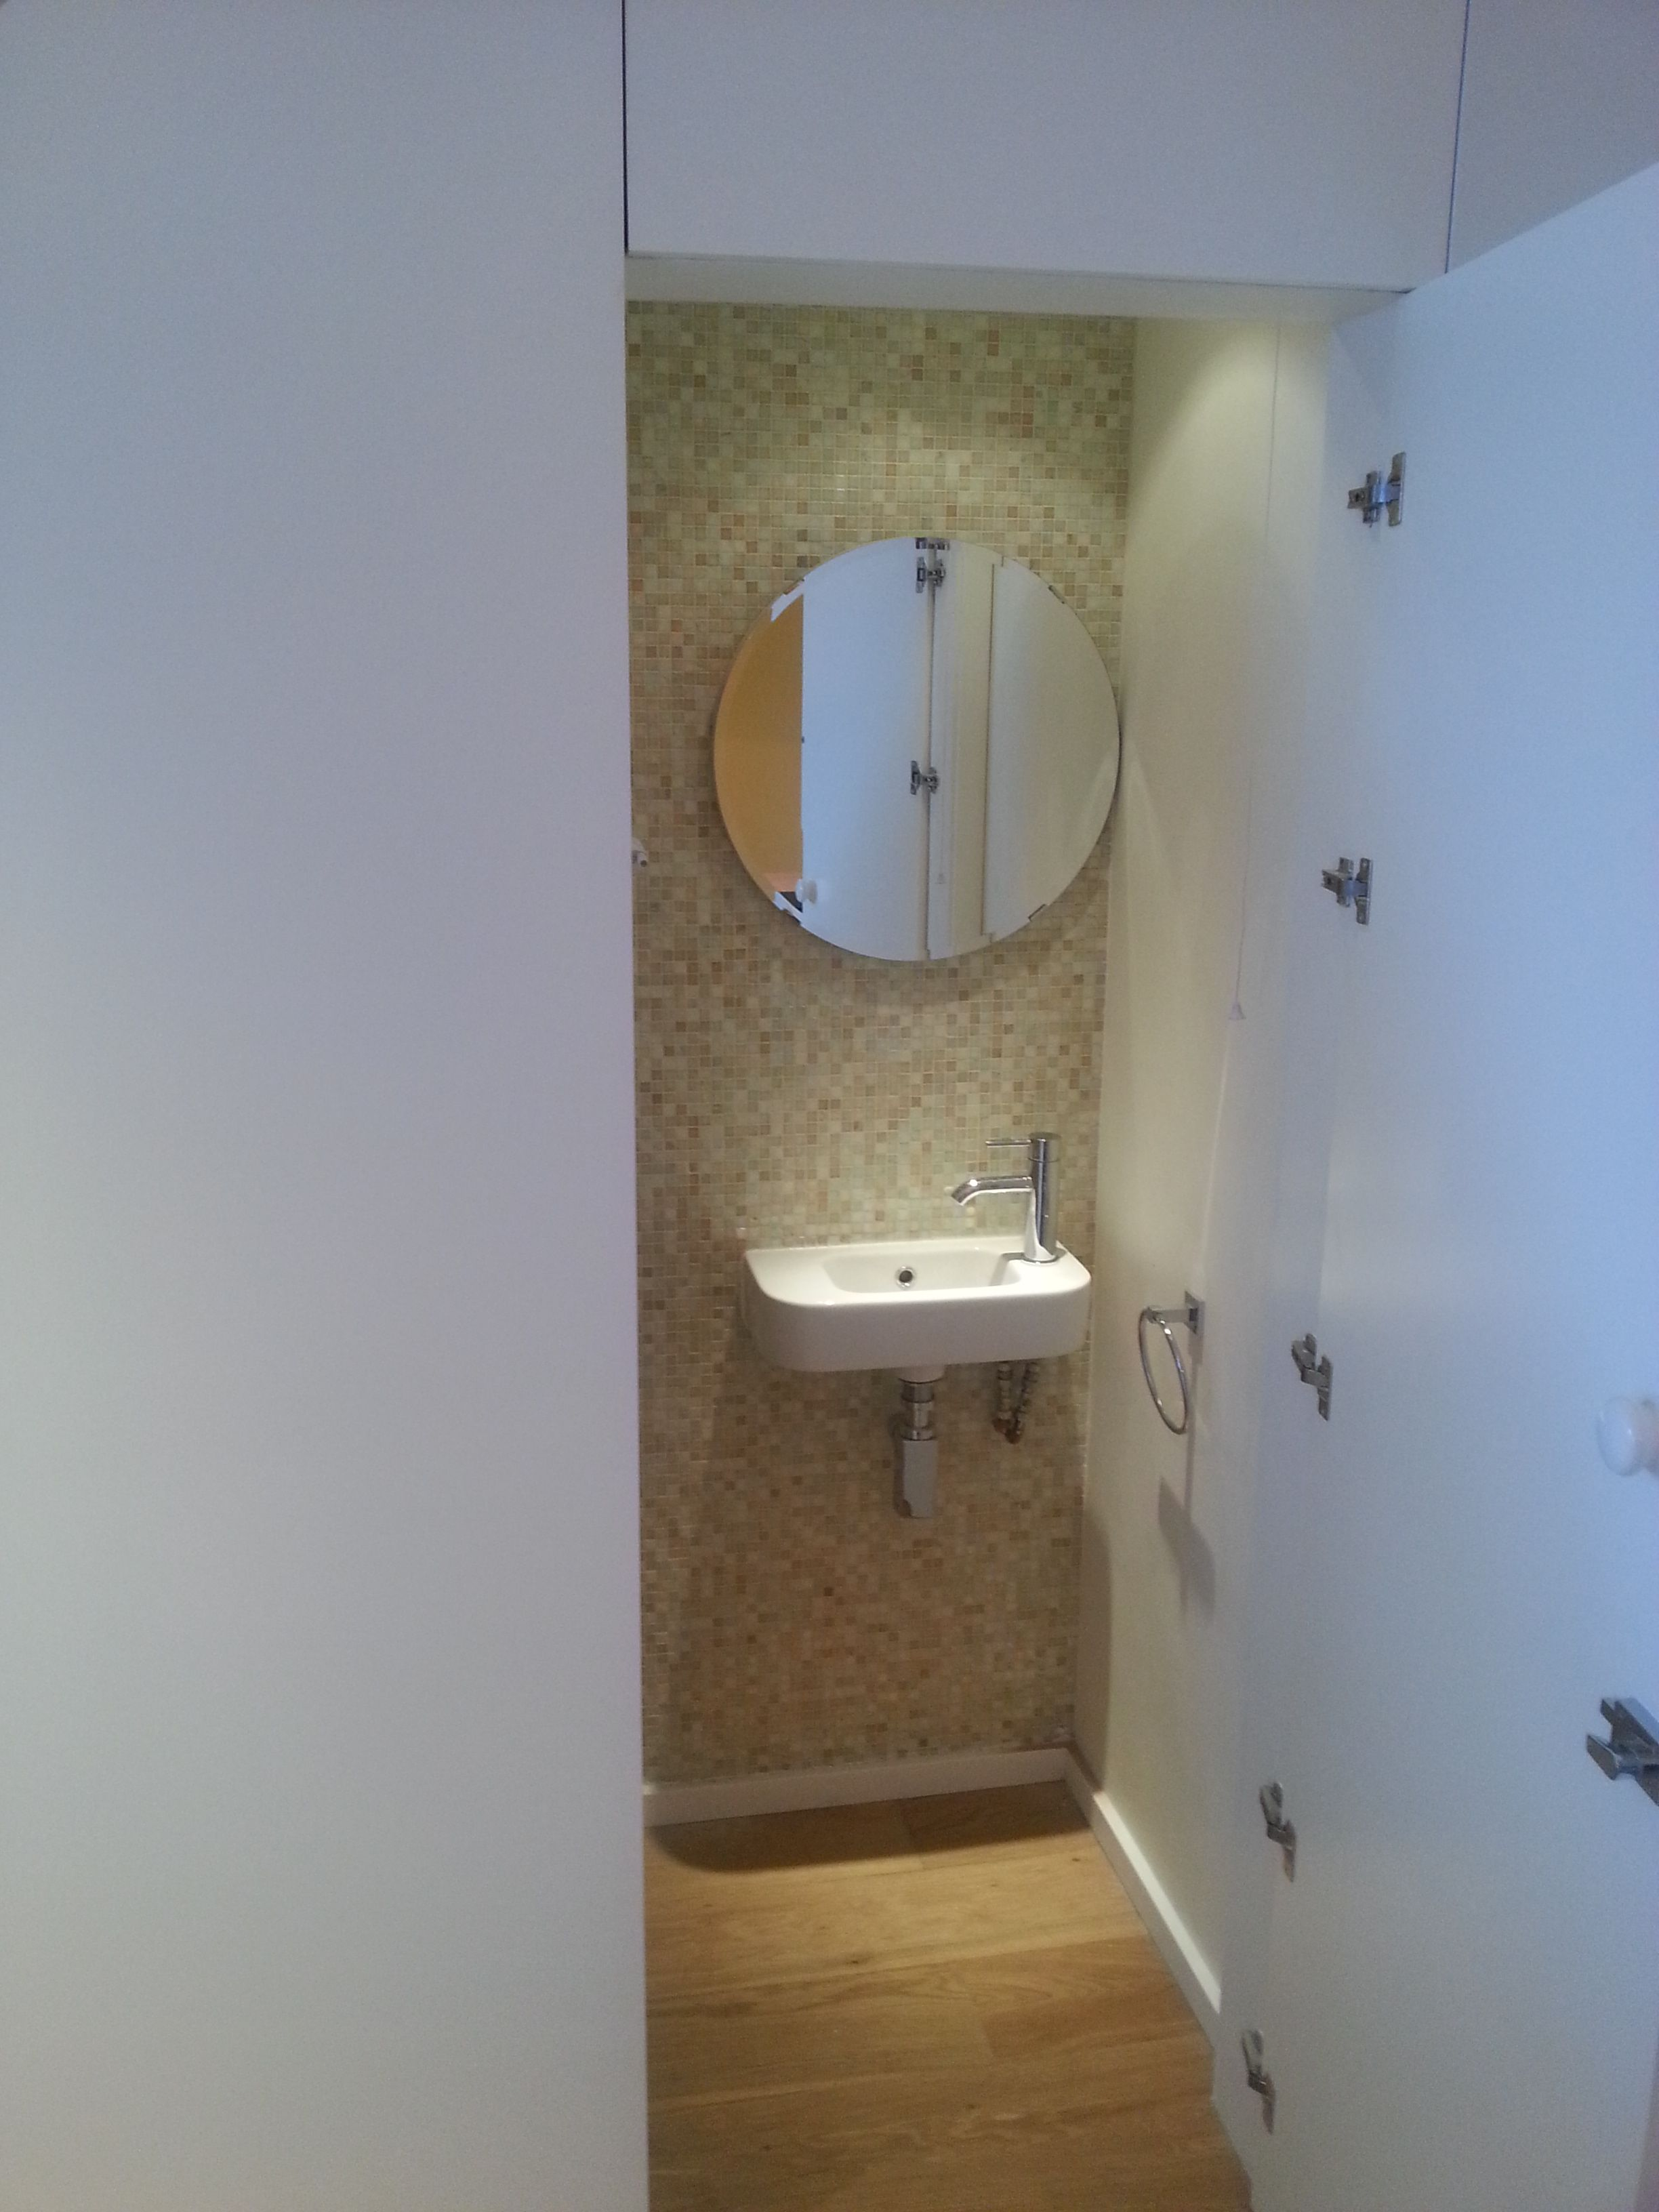 Toilet under stair covered by at white matt finisihing panneling